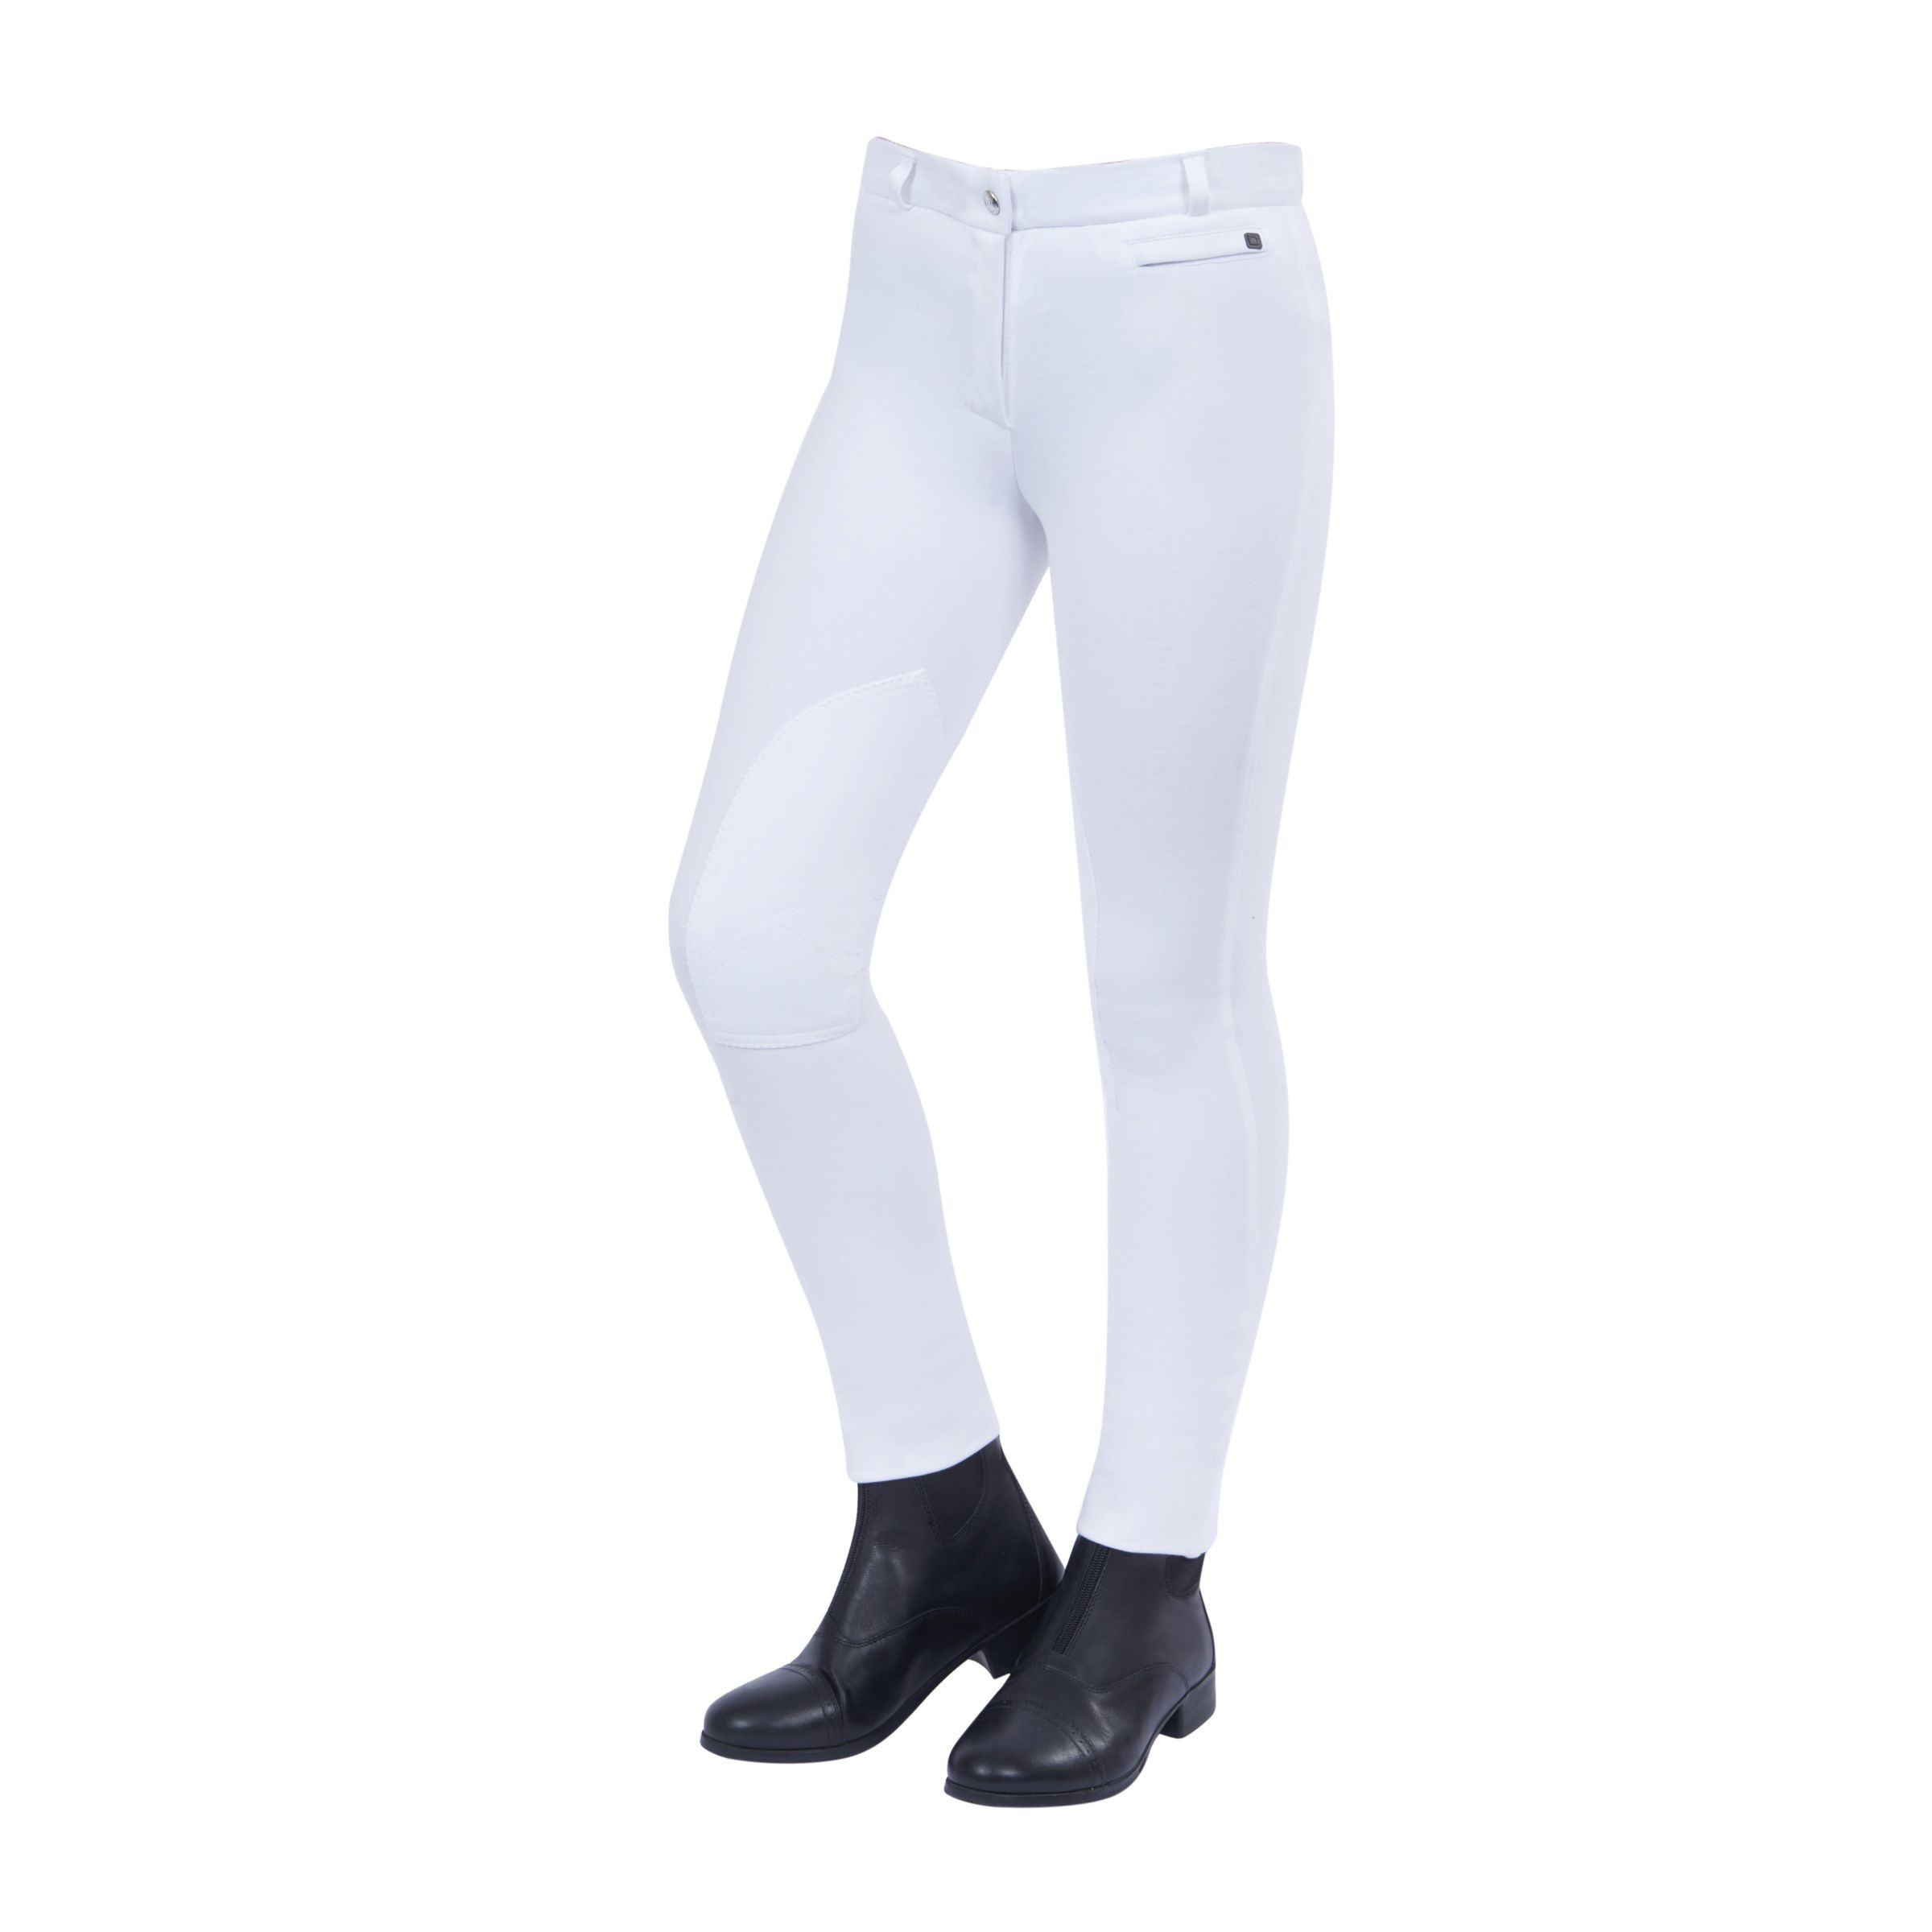 Dublin Momentum Supa-Fit Childs Knee Patch Zip Up  Jodhpurs - White